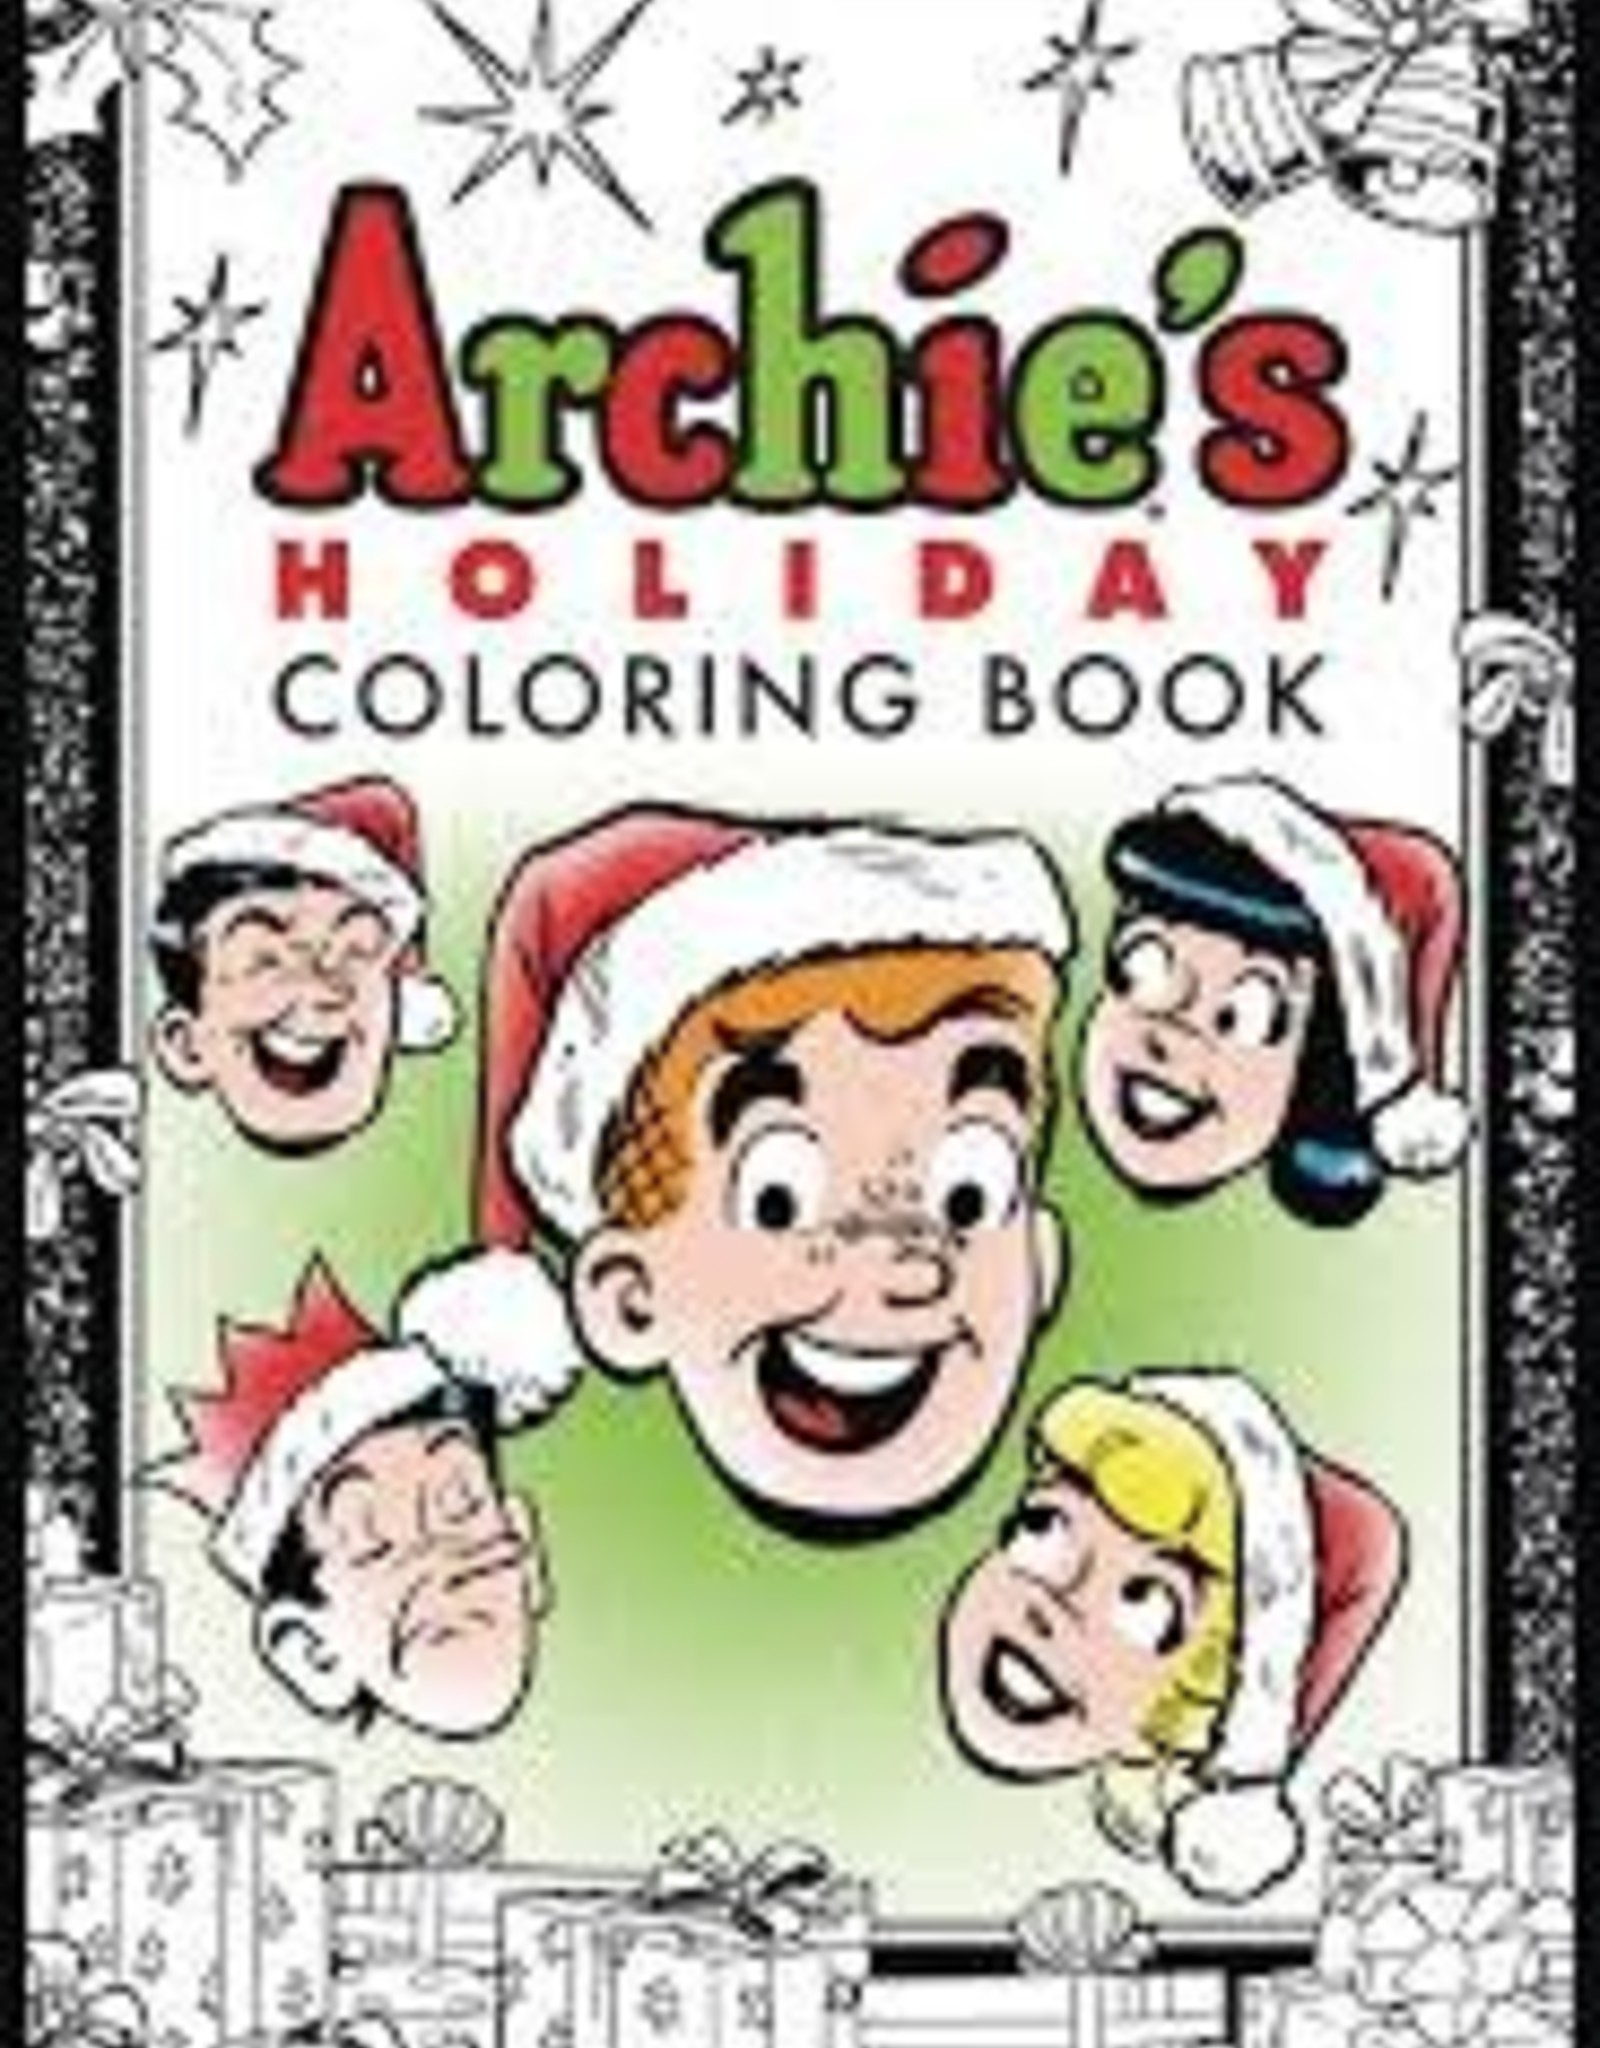 ARCHIE COMIC PUBLICATIONS ARCHIES HOLIDAY COLORING BOOK